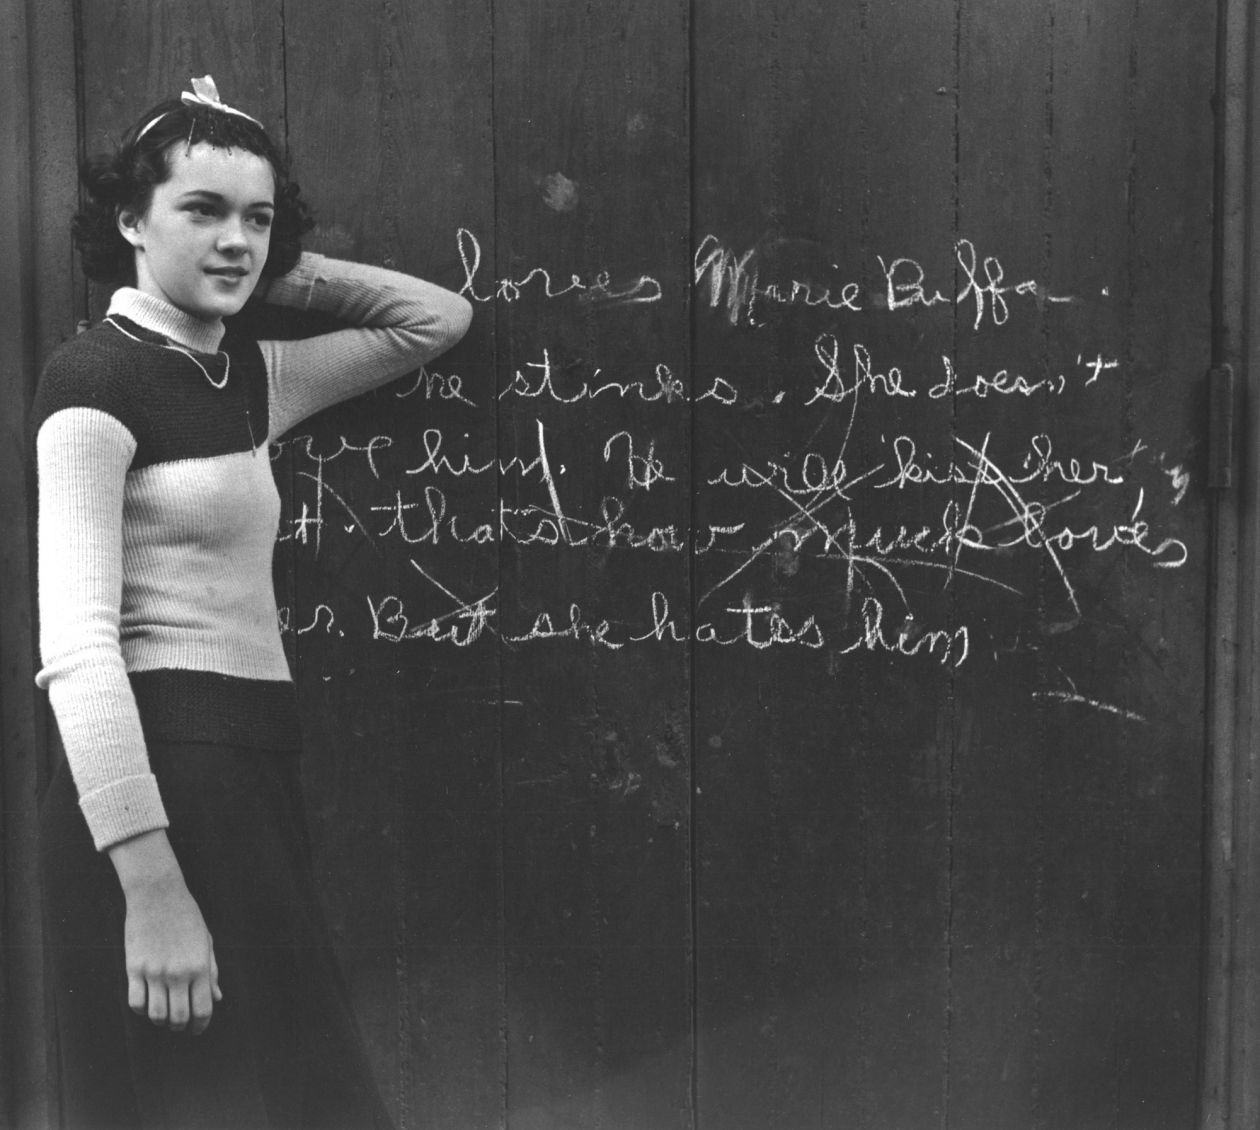 Love Hate Graffiti (1937) by John Gutmann